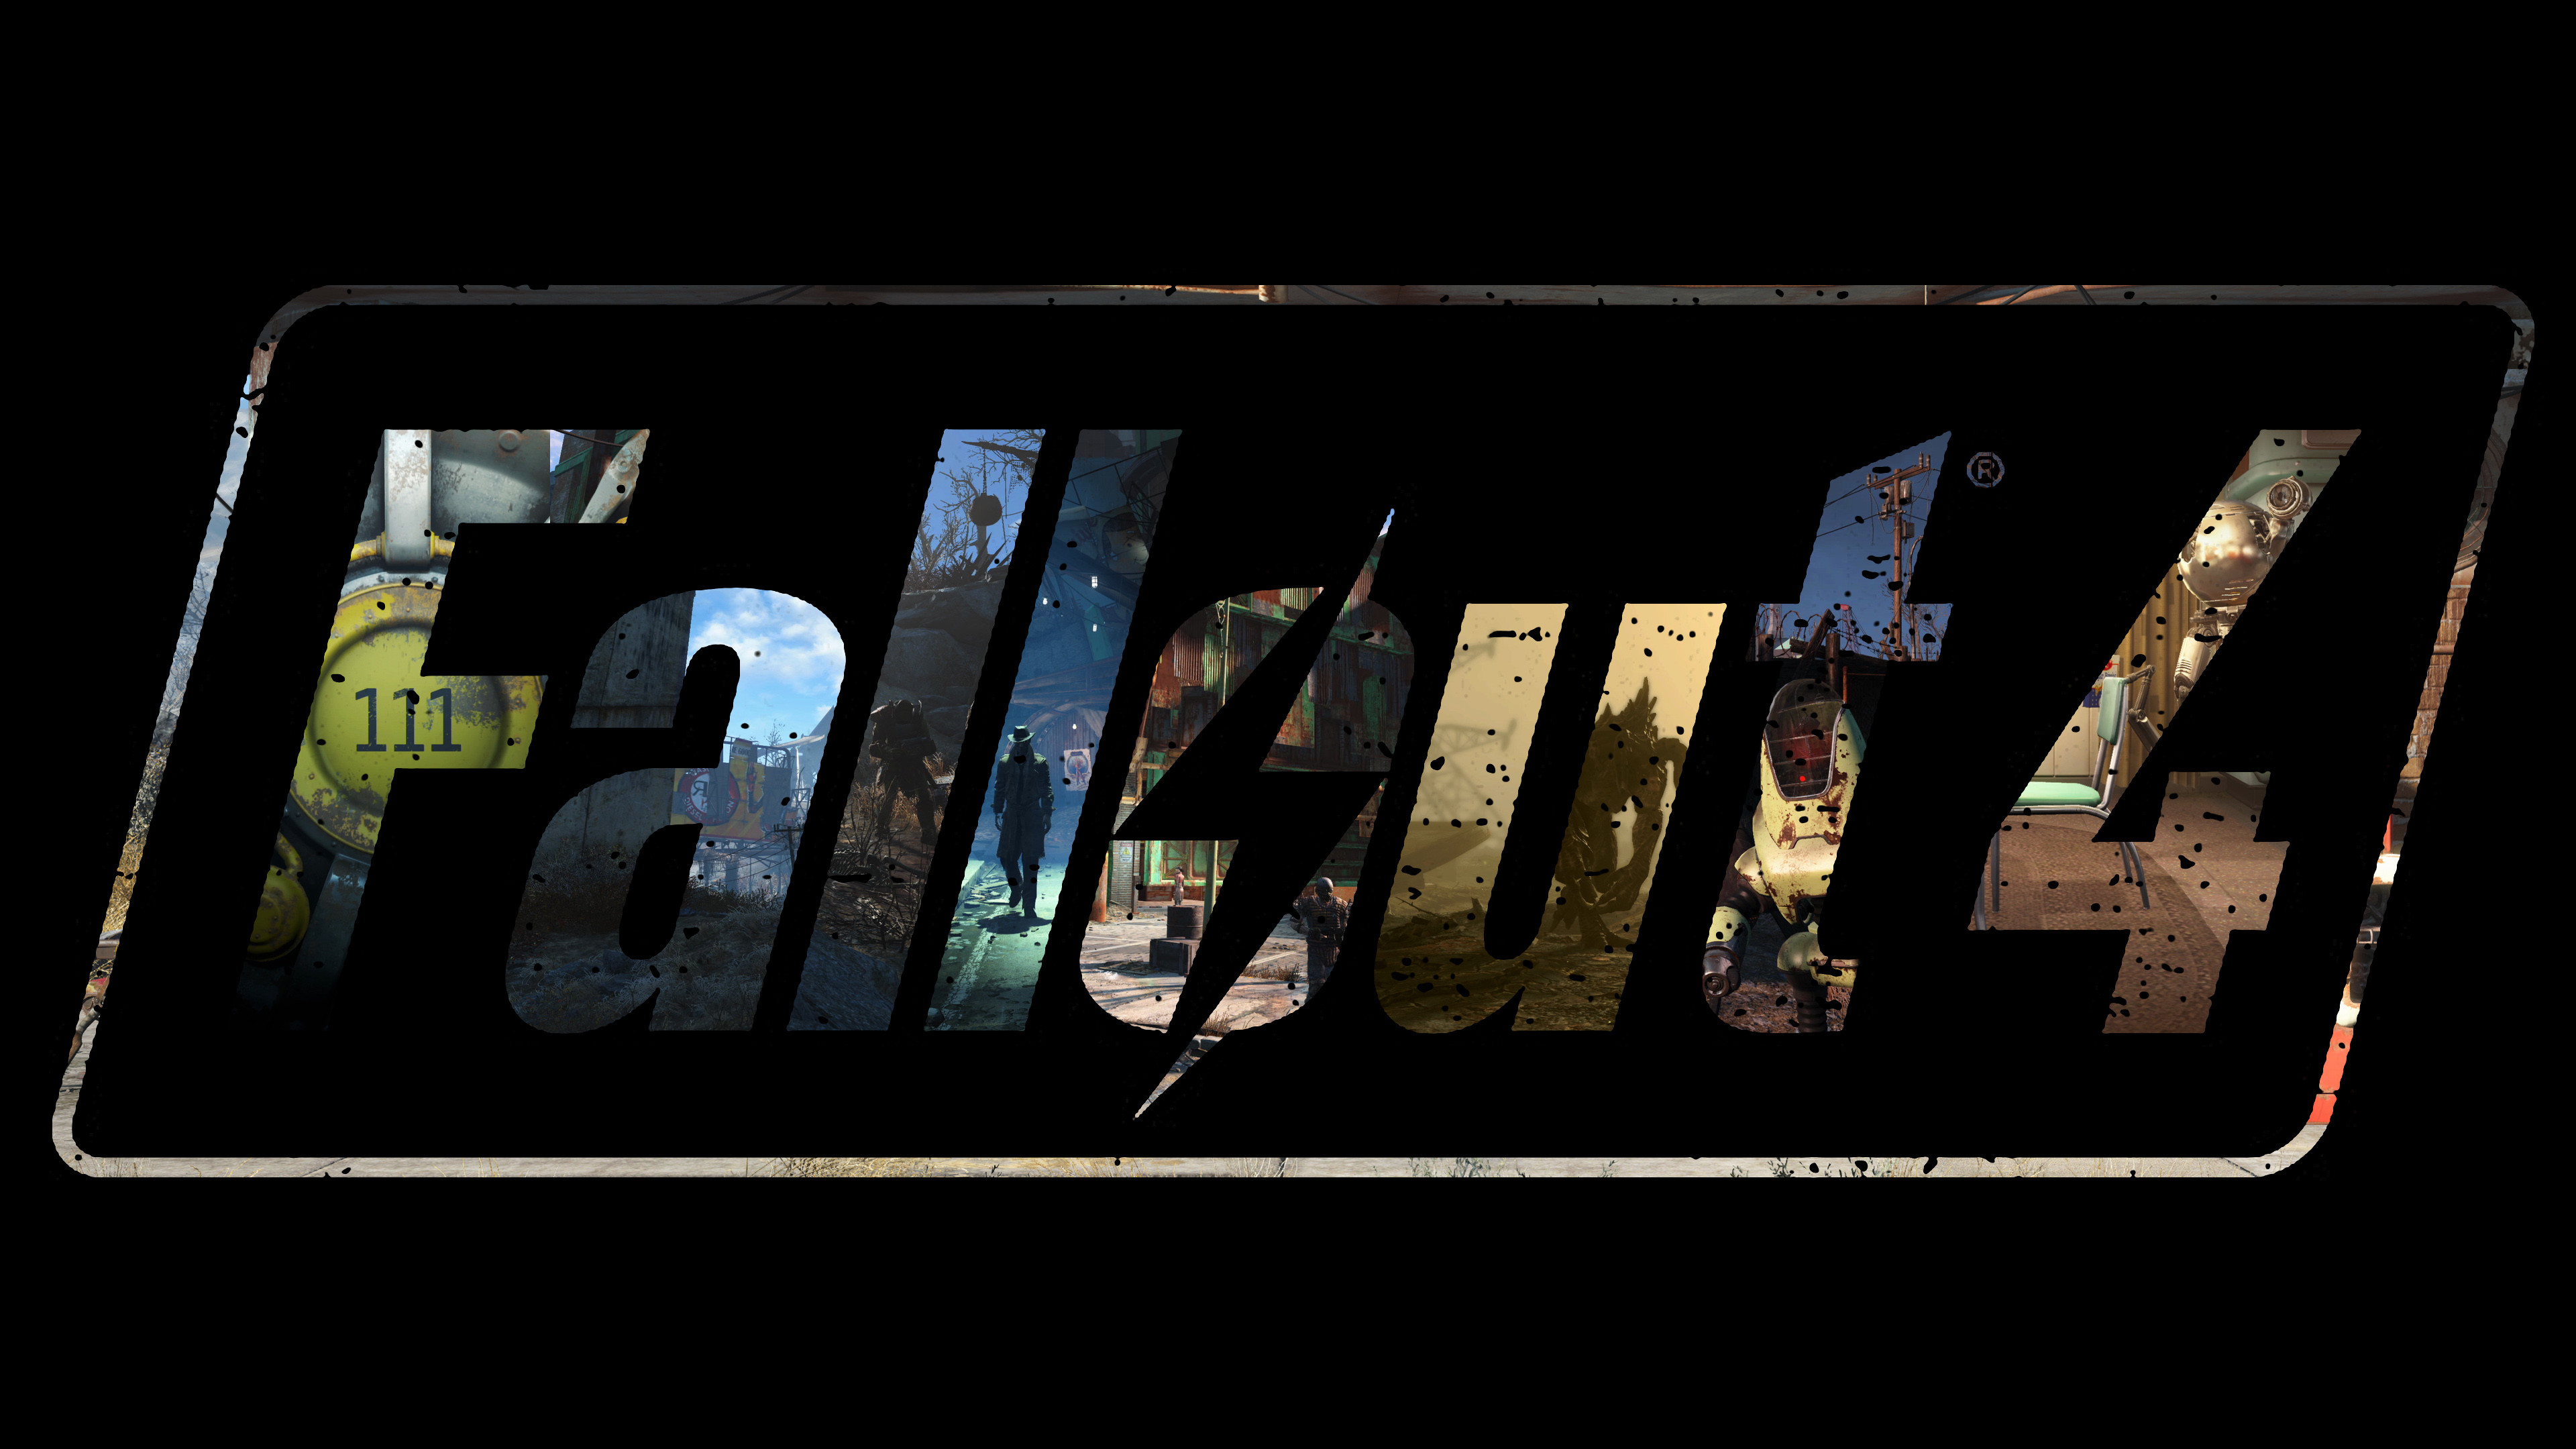 Fallout 4 Wallpapers Full Hd On Wallpaper Hd 3840 x 2160 px 2.43 MB please  standby